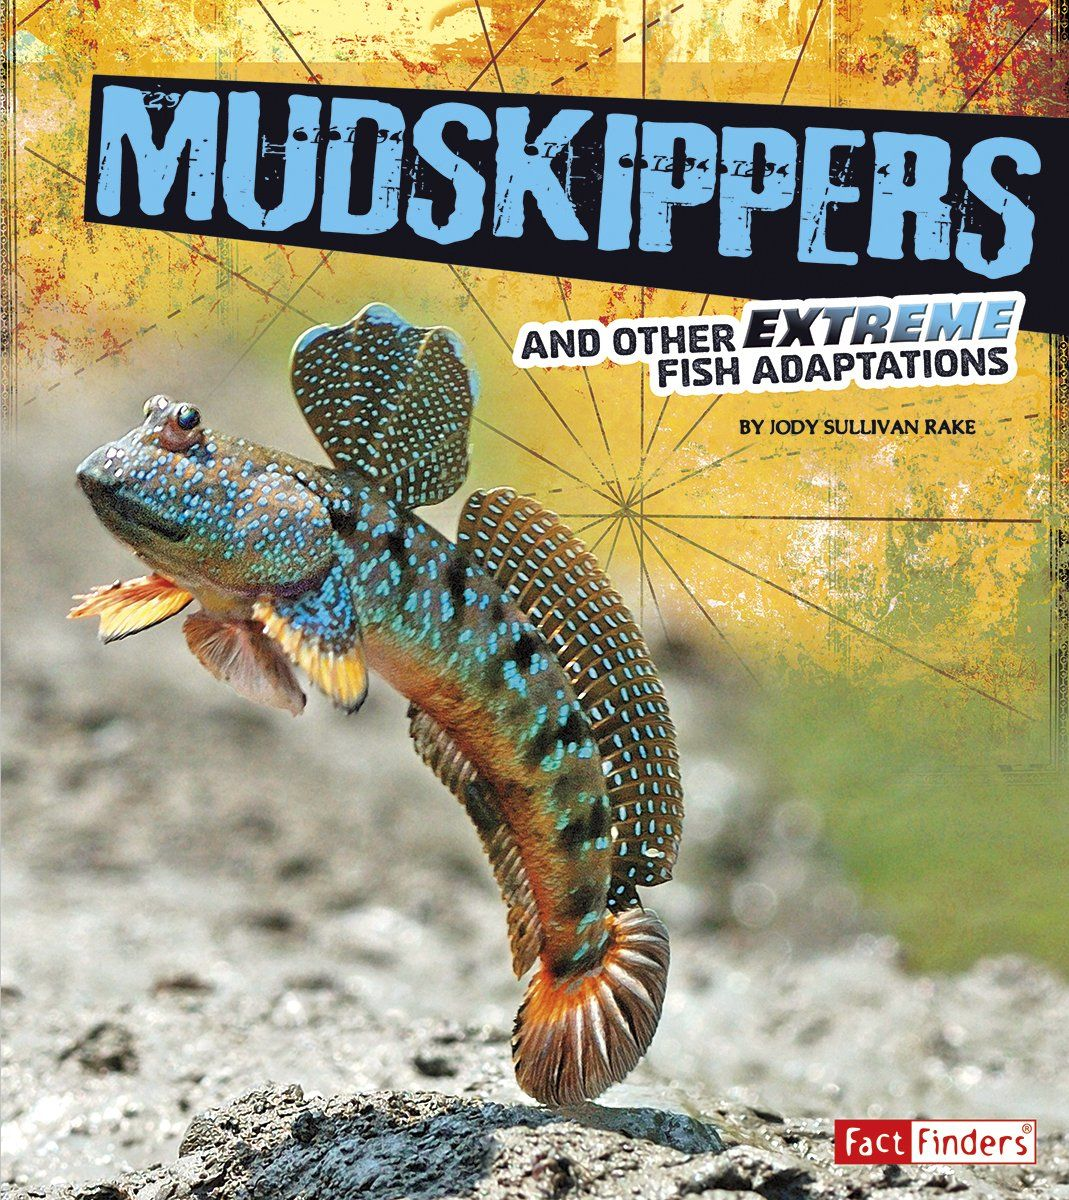 Mudskippers and Other Extreme Fish Adaptations (Extreme